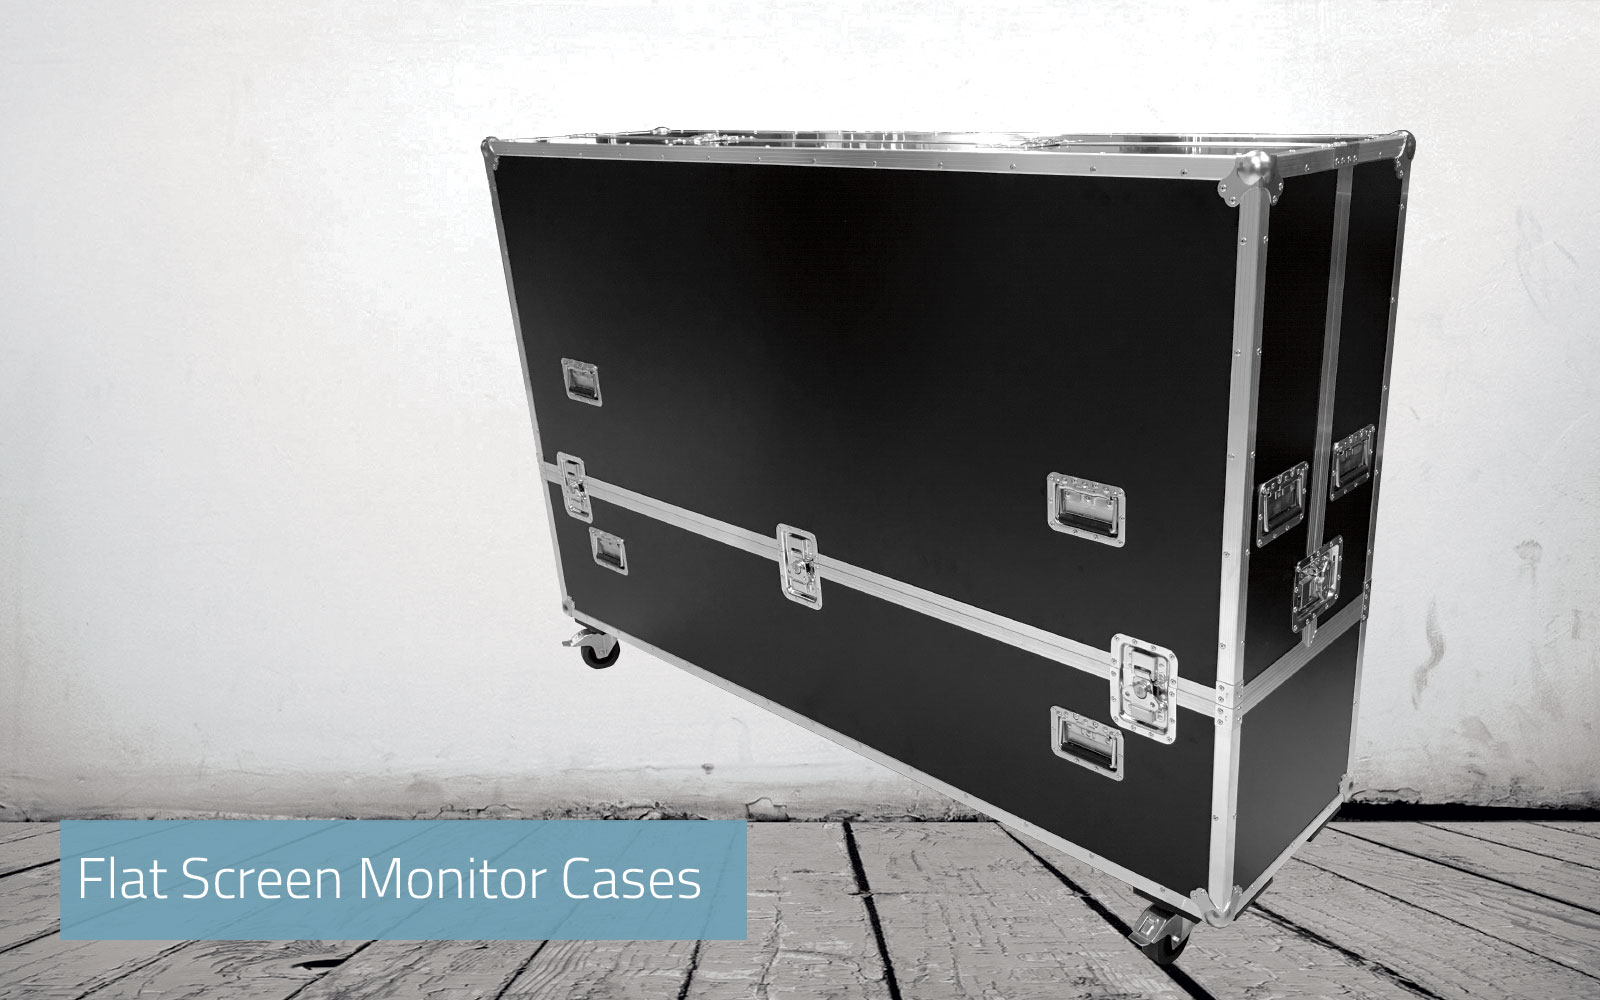 Flat Screen Monitor Cases